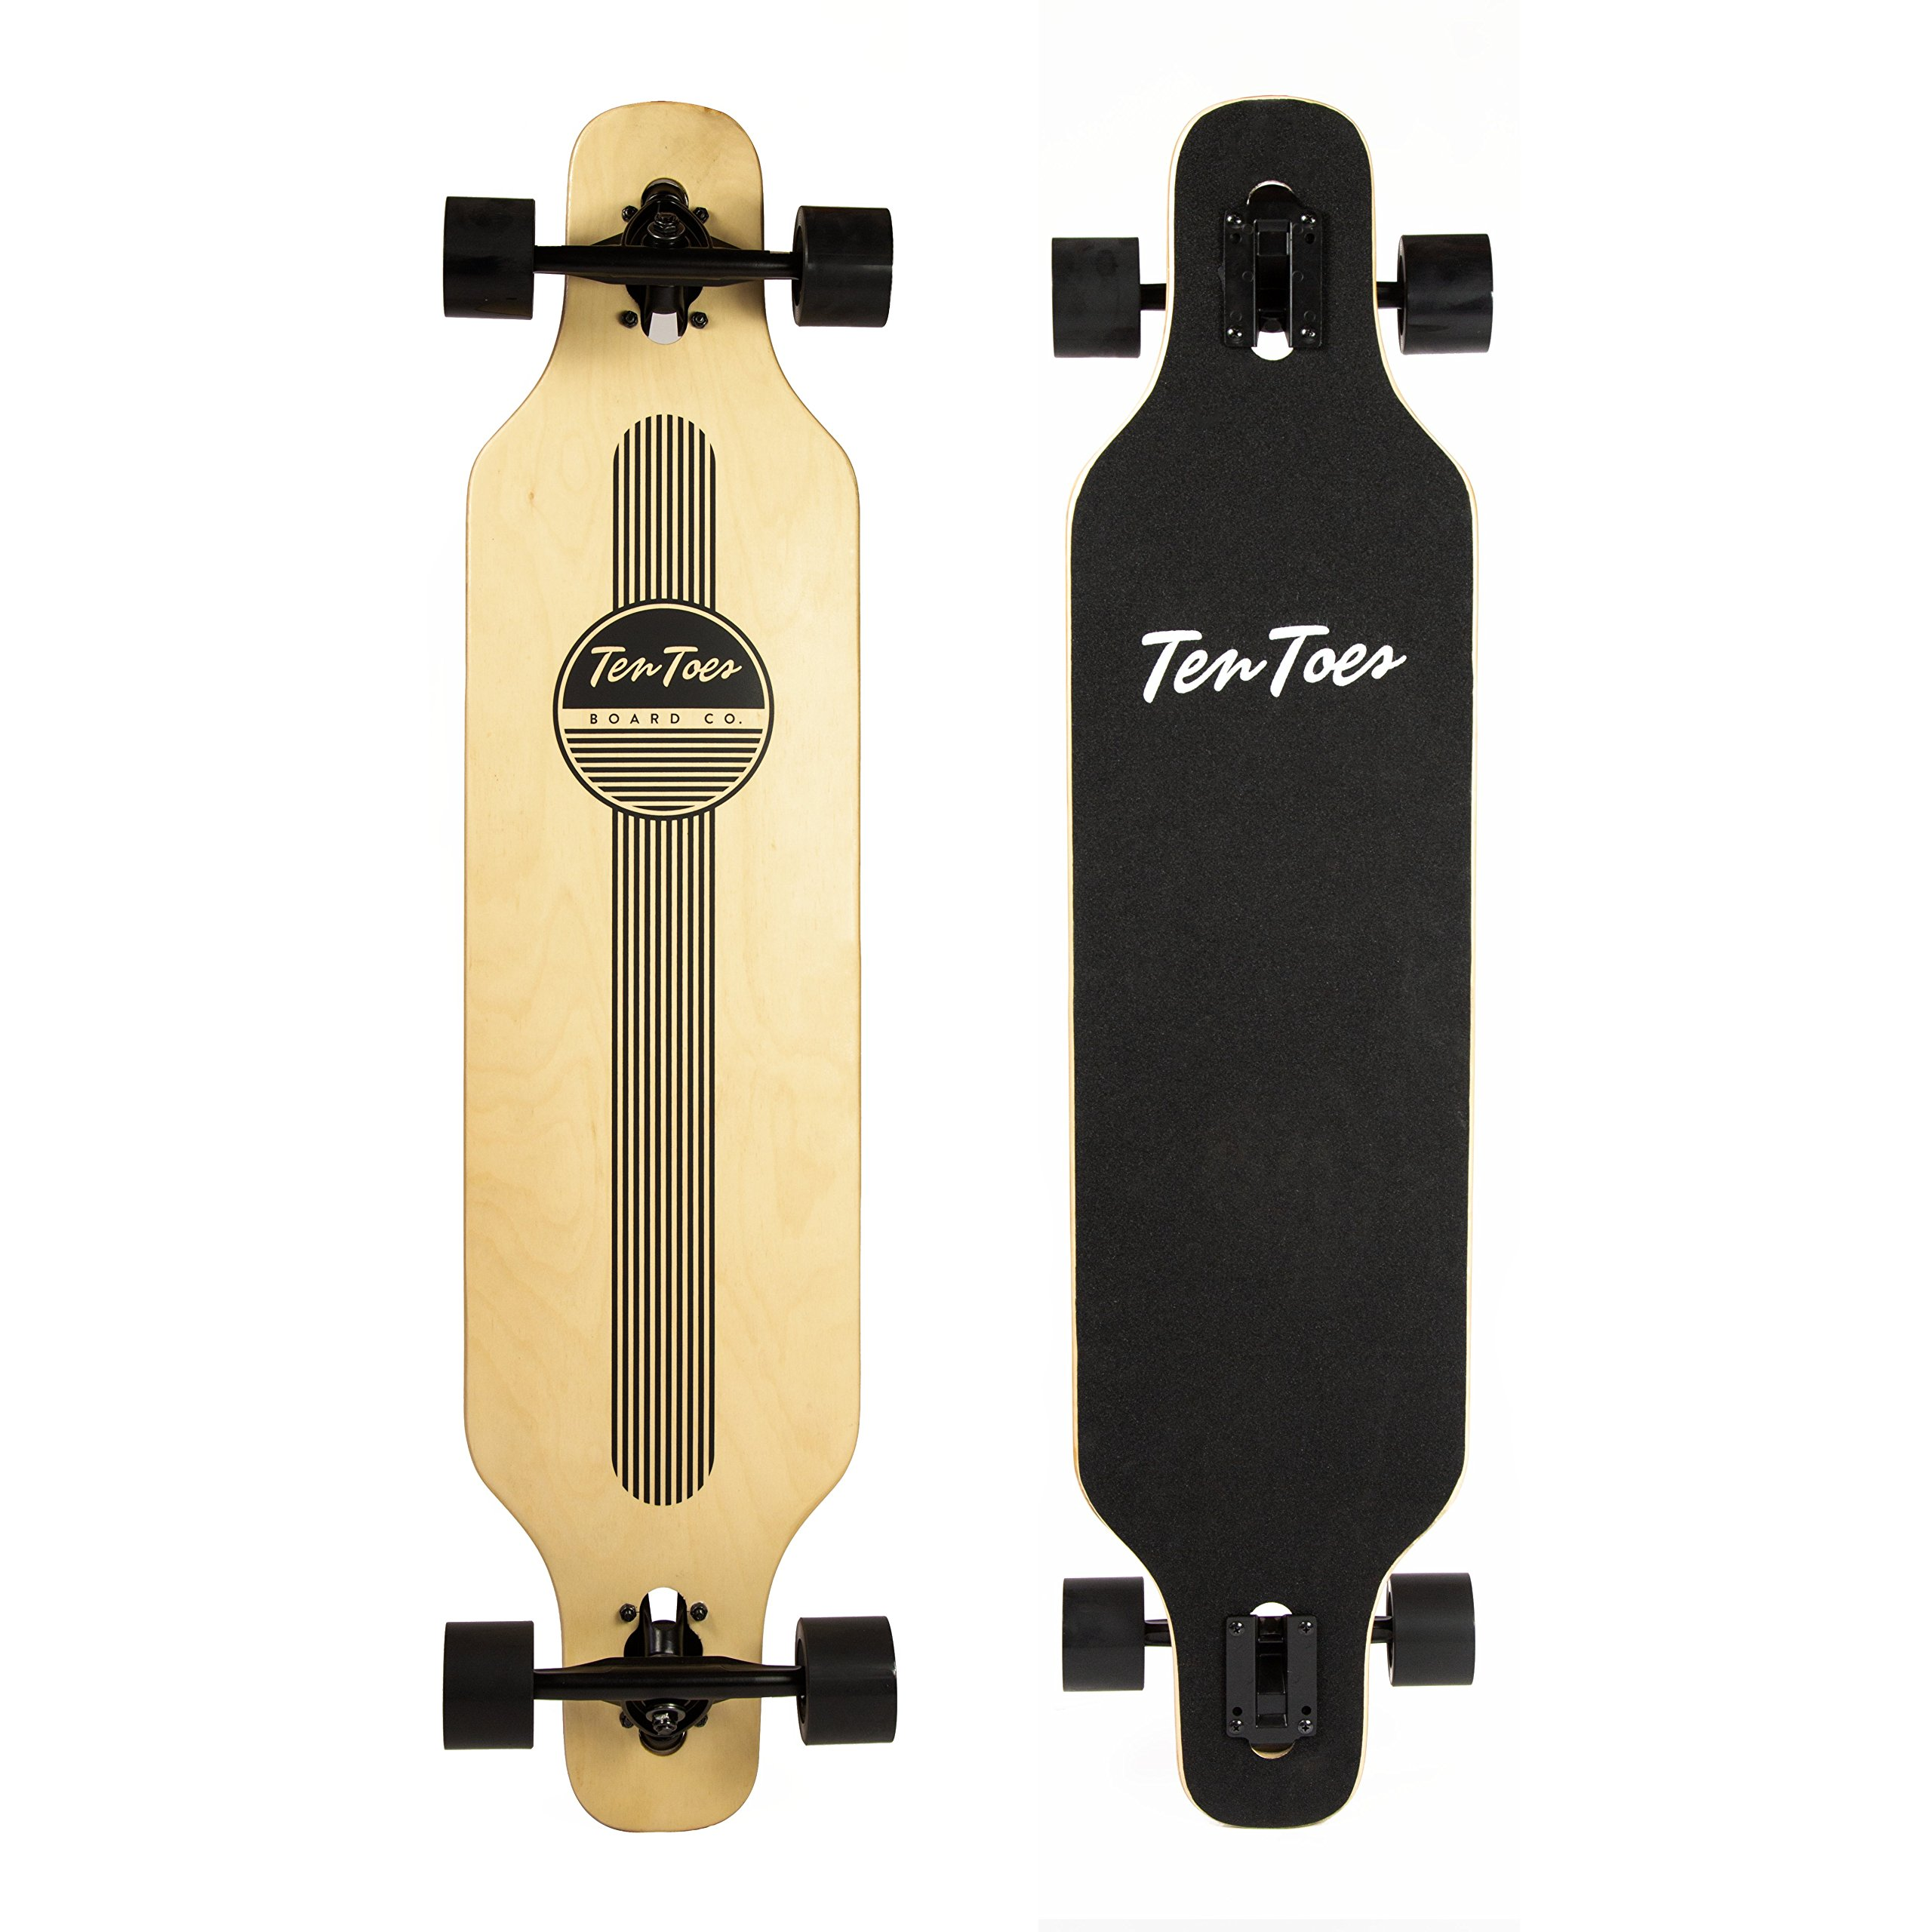 Ten Toes Rift Drop-Through Longboard Skateboard